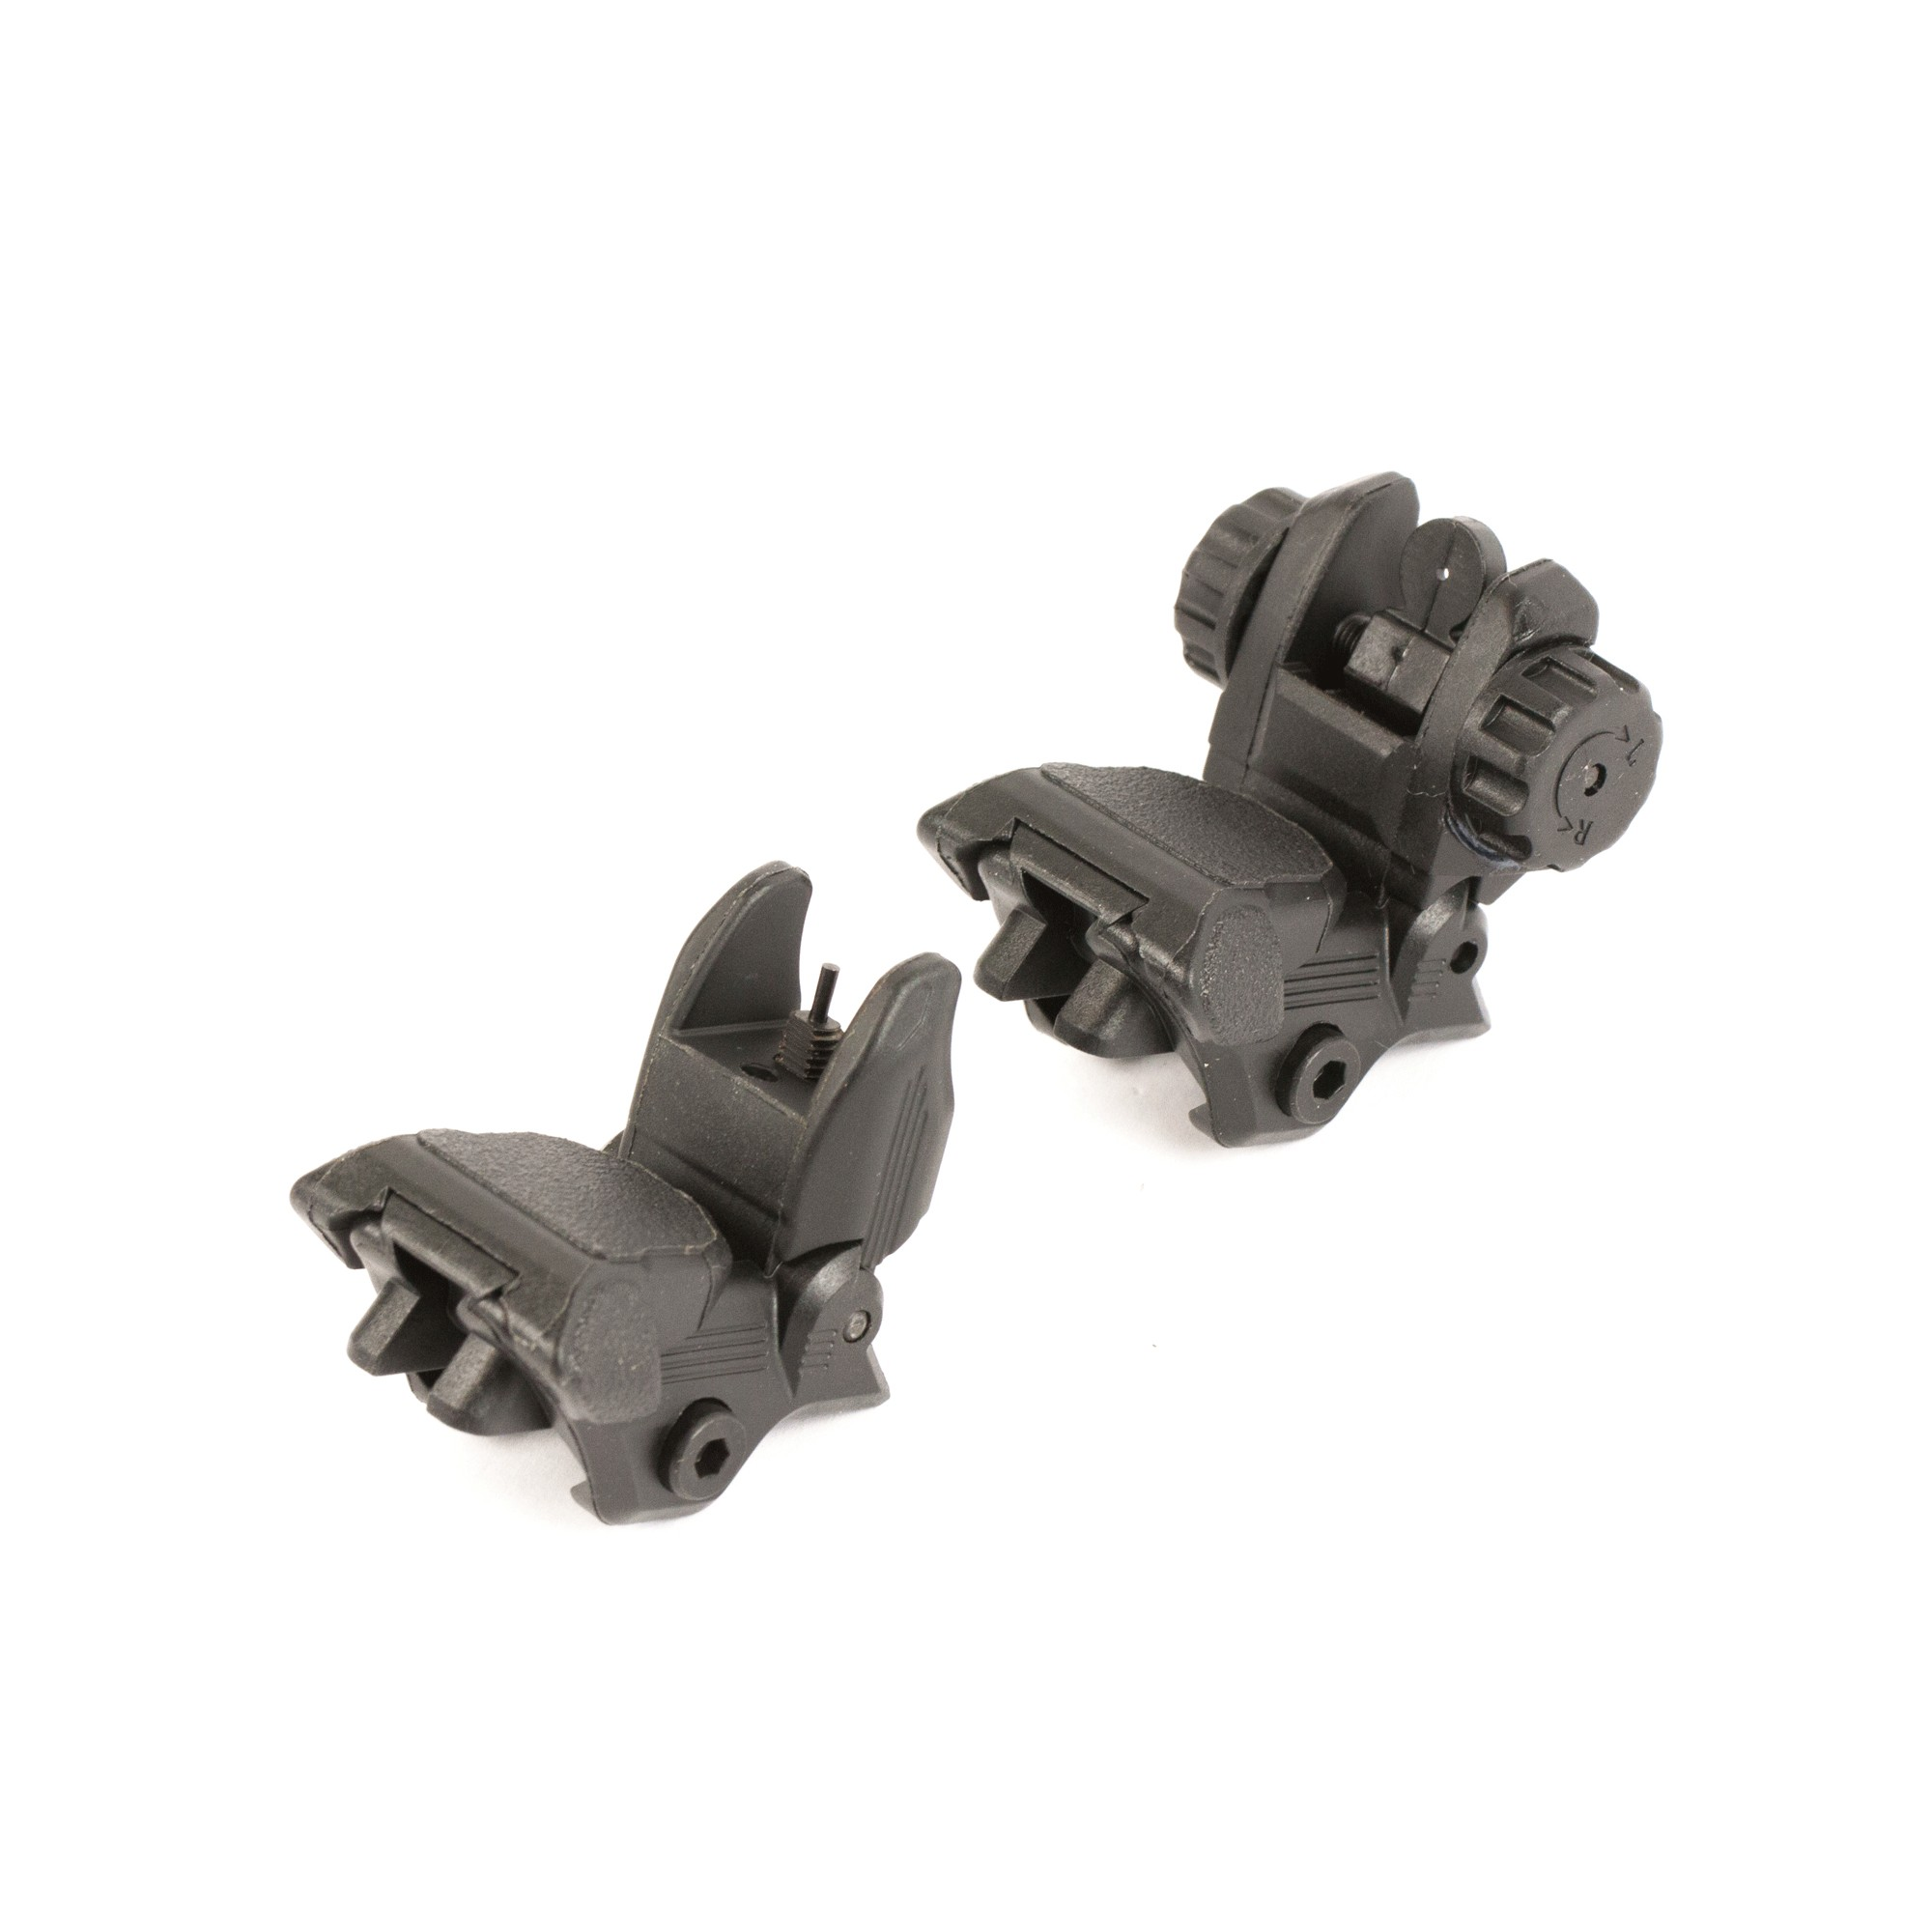 Lakota Ops Polymer Spring Flip Up Backup Sight Set - Black